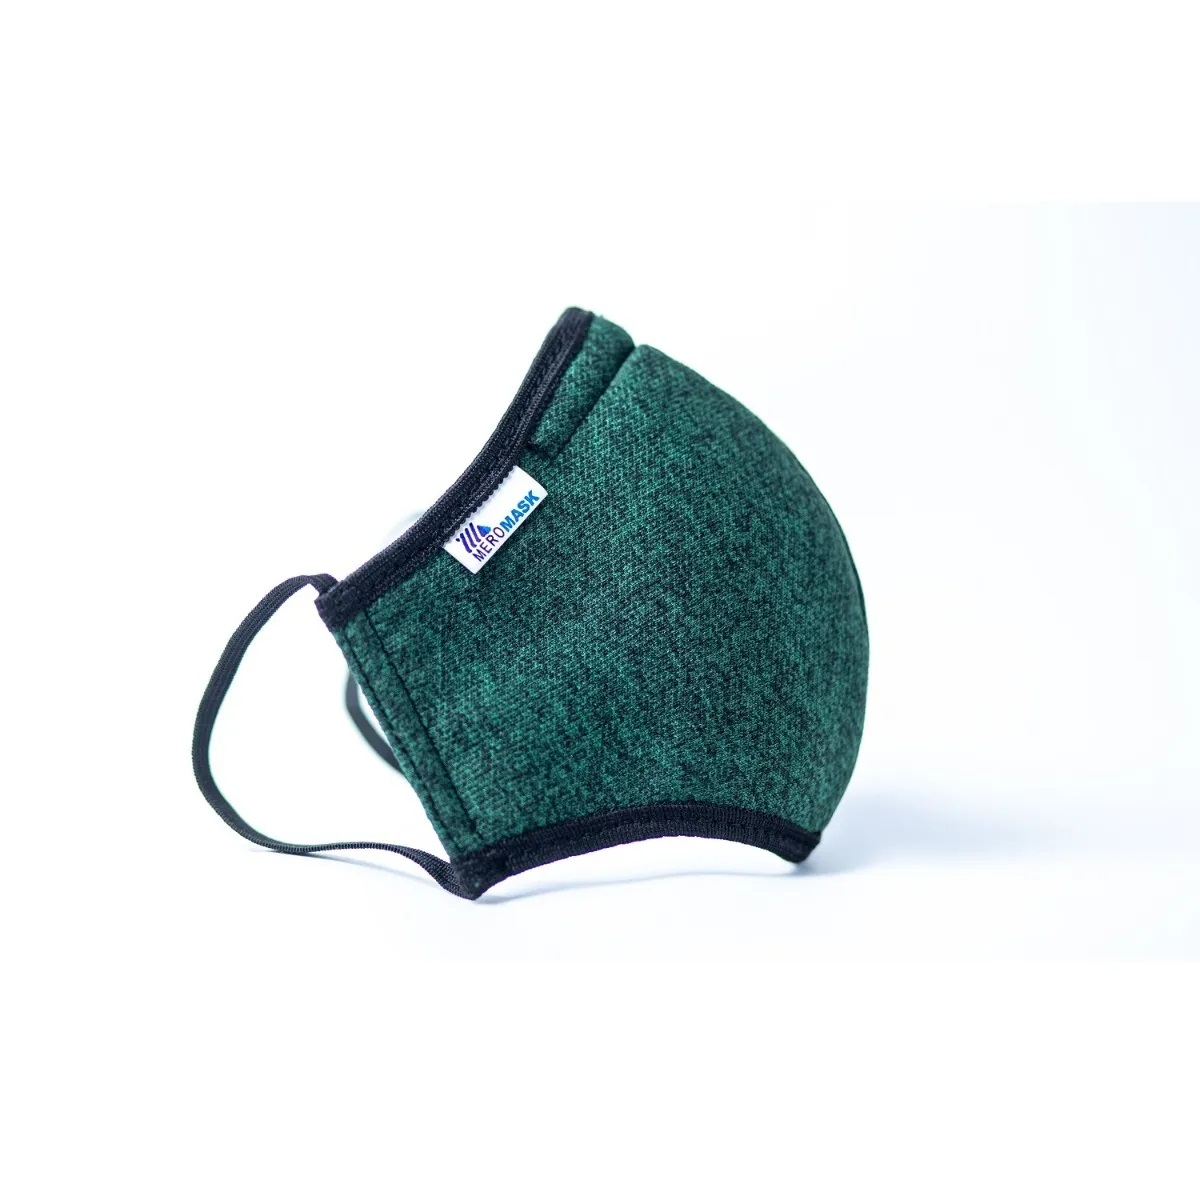 Mero Mask Green Without Filter For Men